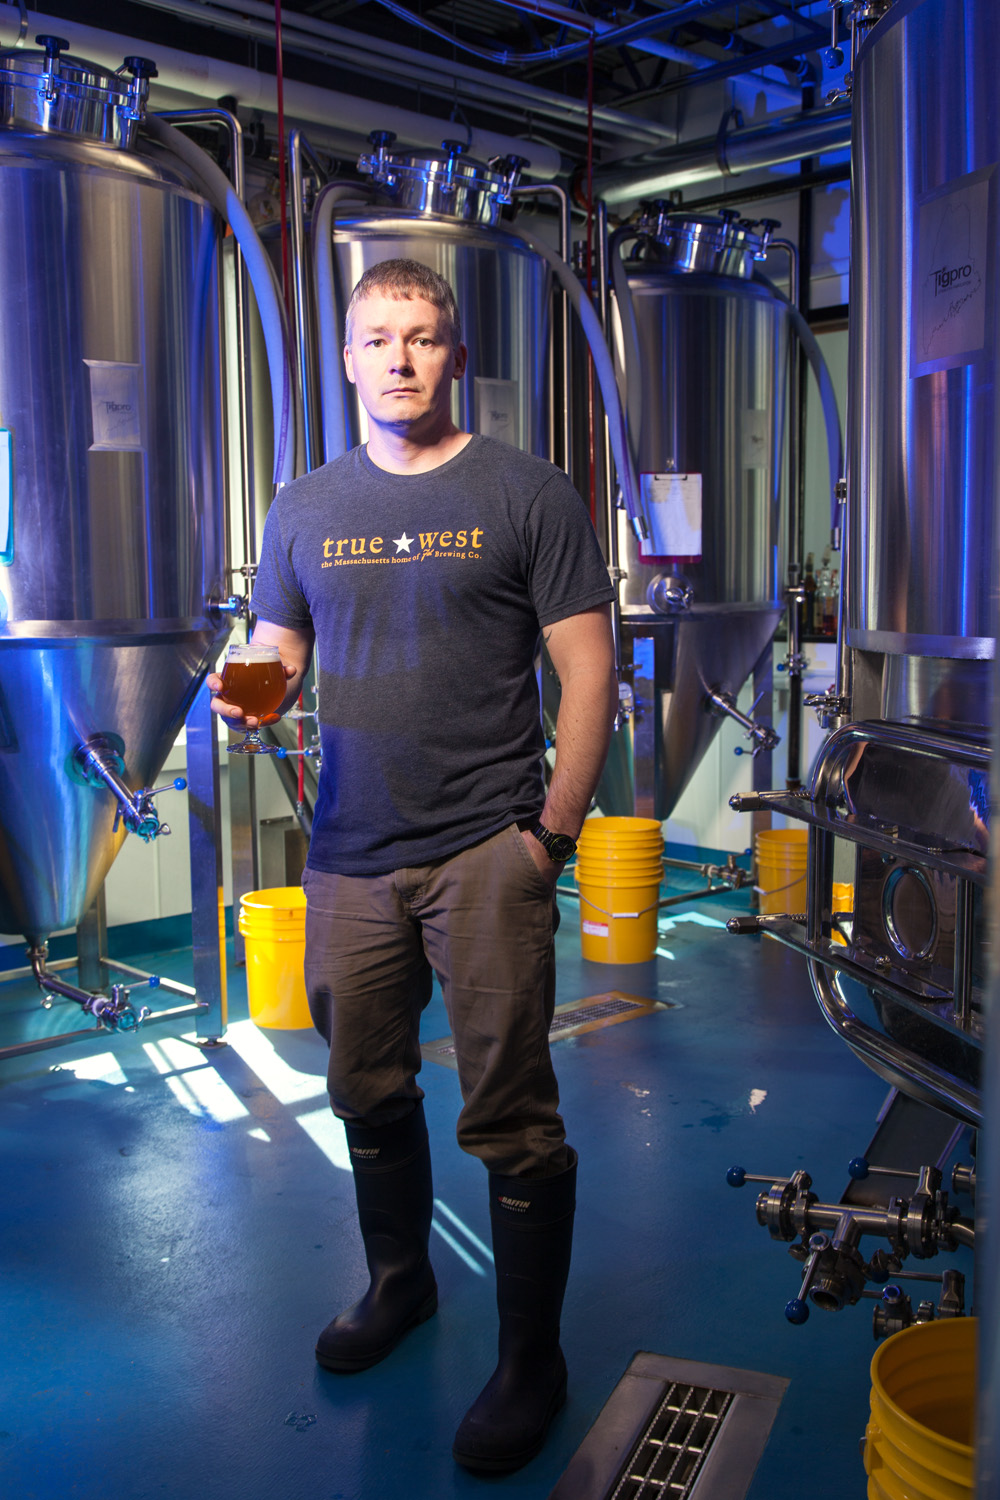 Russell Carpenter, Brewer at True West Brewing Co. Acton, MA Established in 2015